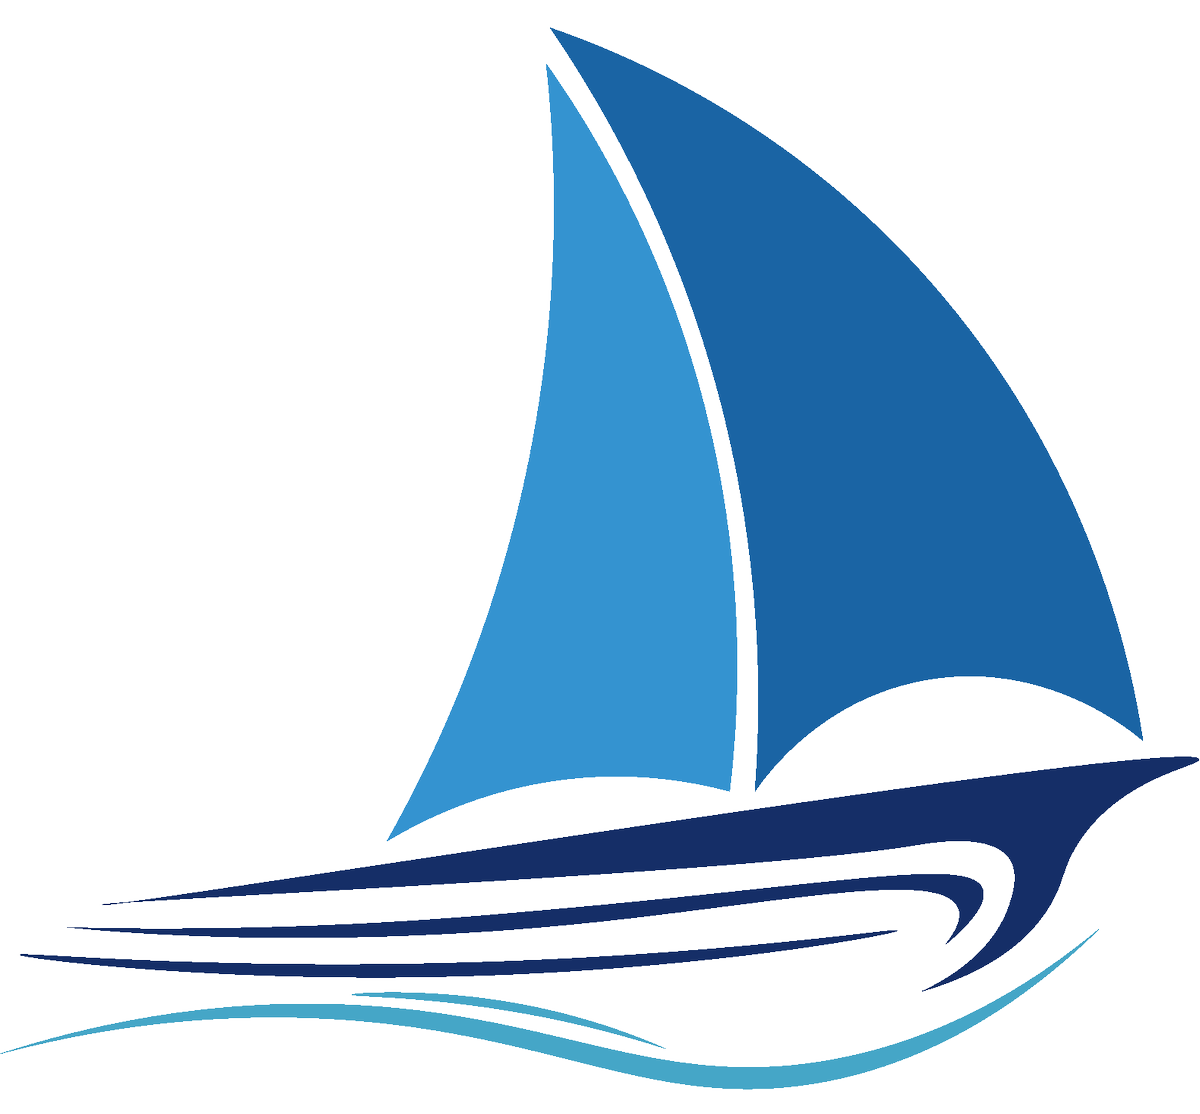 team sailing madrid on twitter quotnuevo logo de